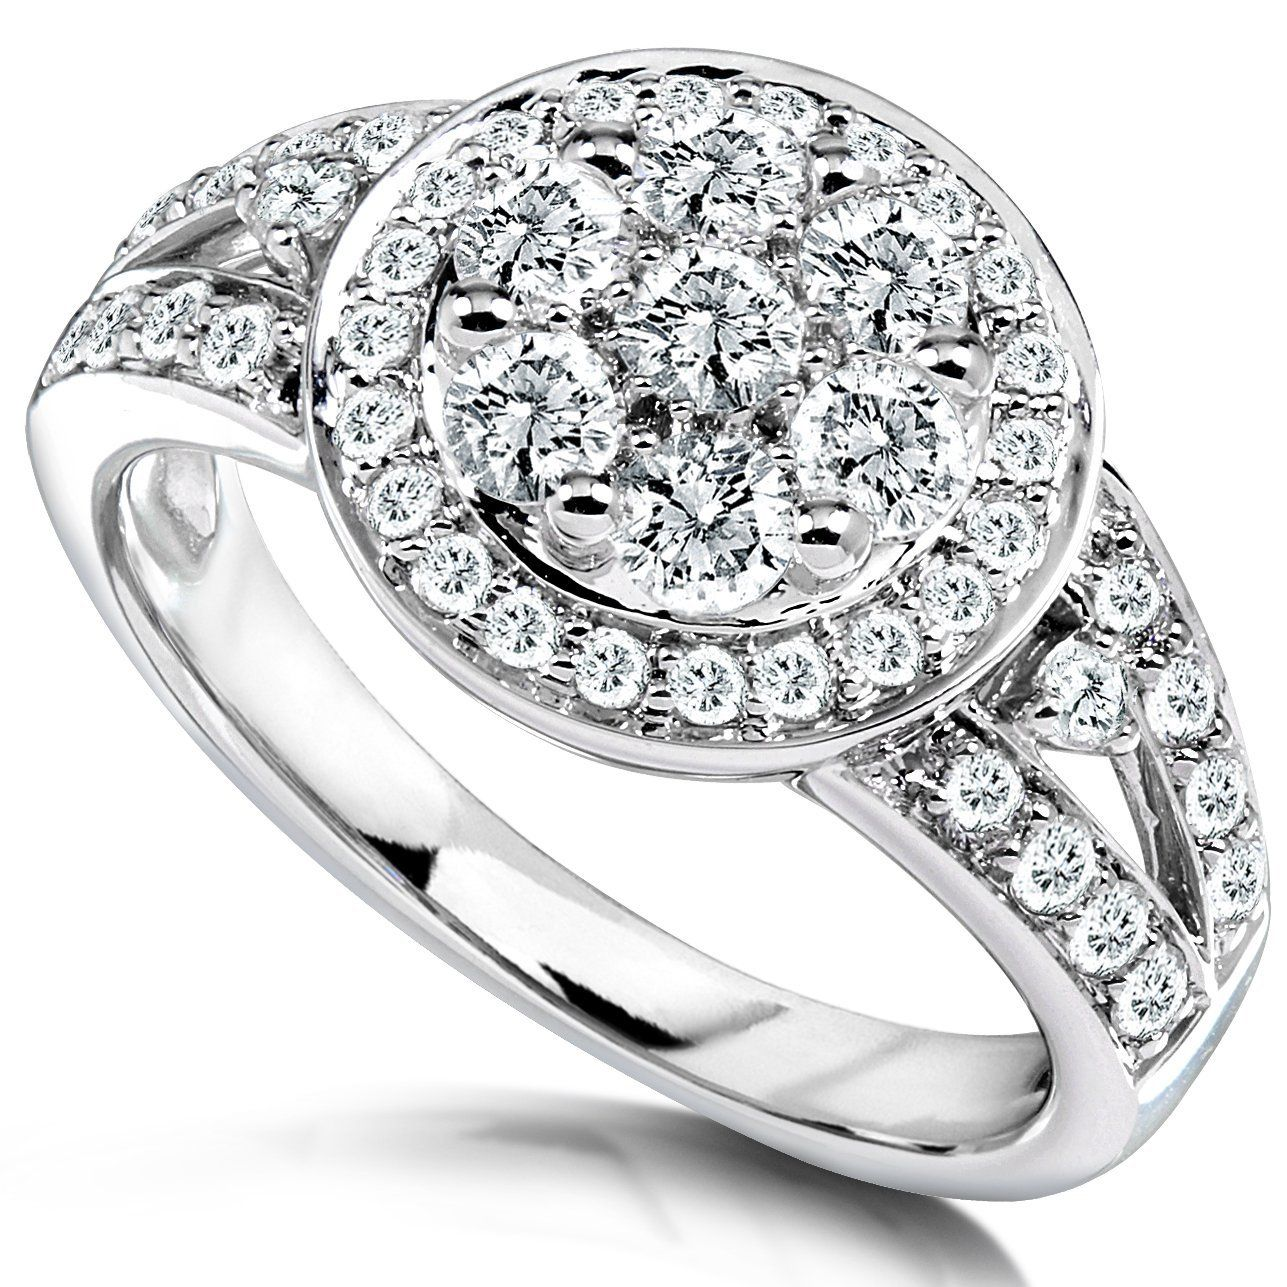 wedding ring diamond 14k White Gold Diamond Cluster Engagement Ring Here s a unique but magnificently studded Diamond Cluster